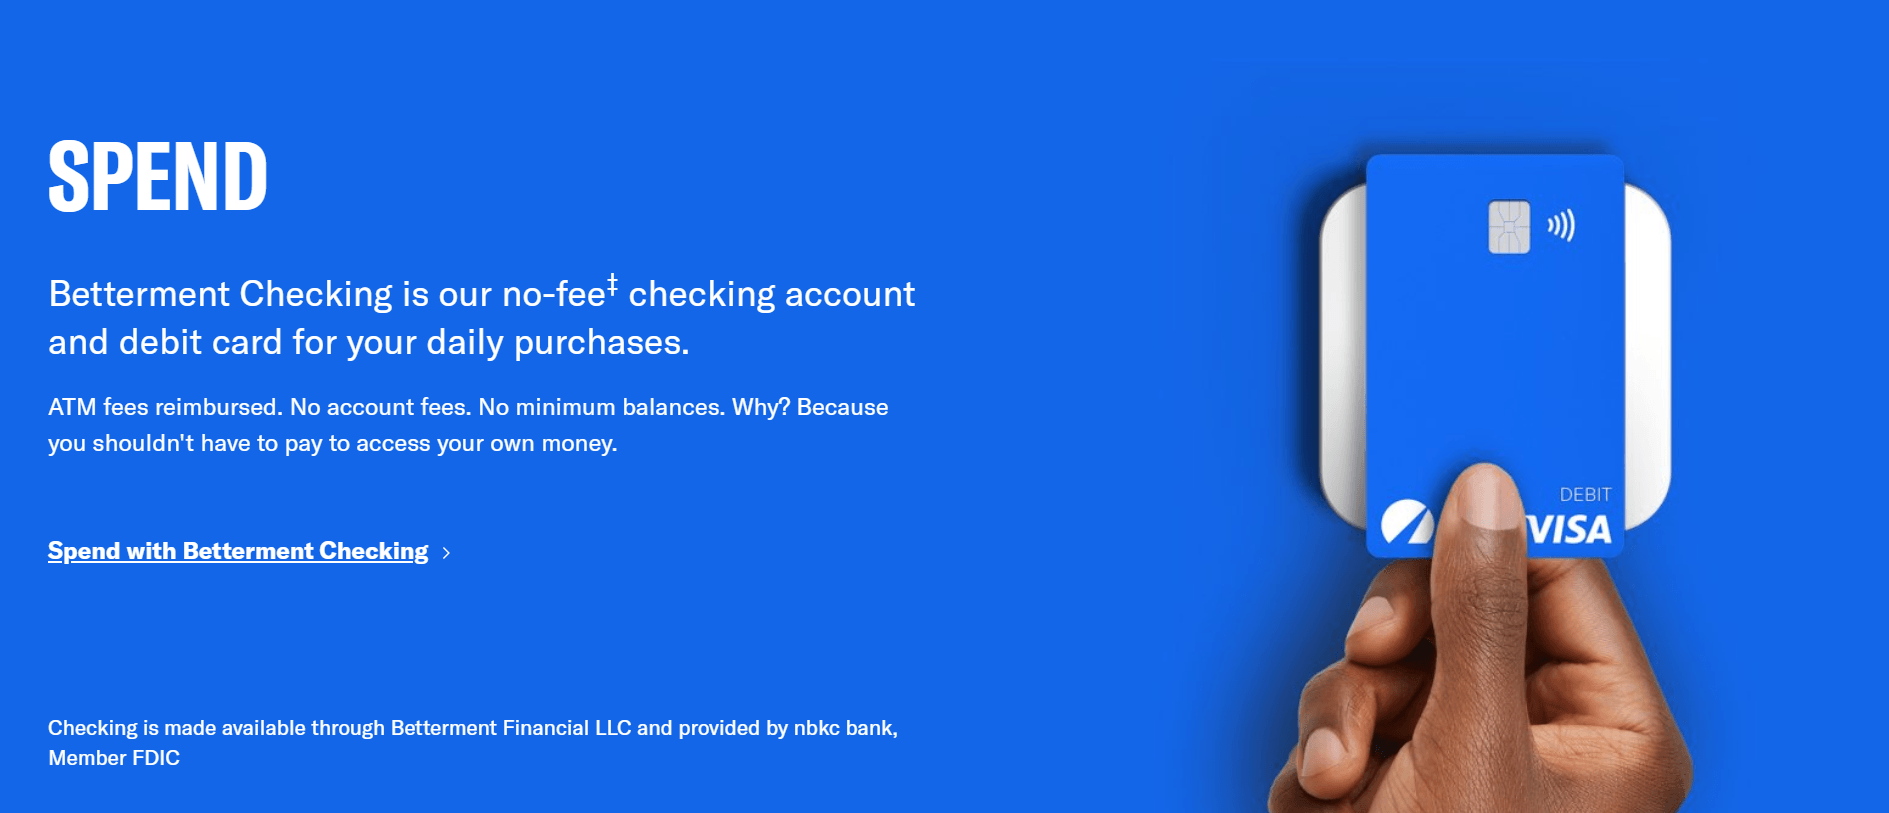 spend-with-betterment-checking-feature